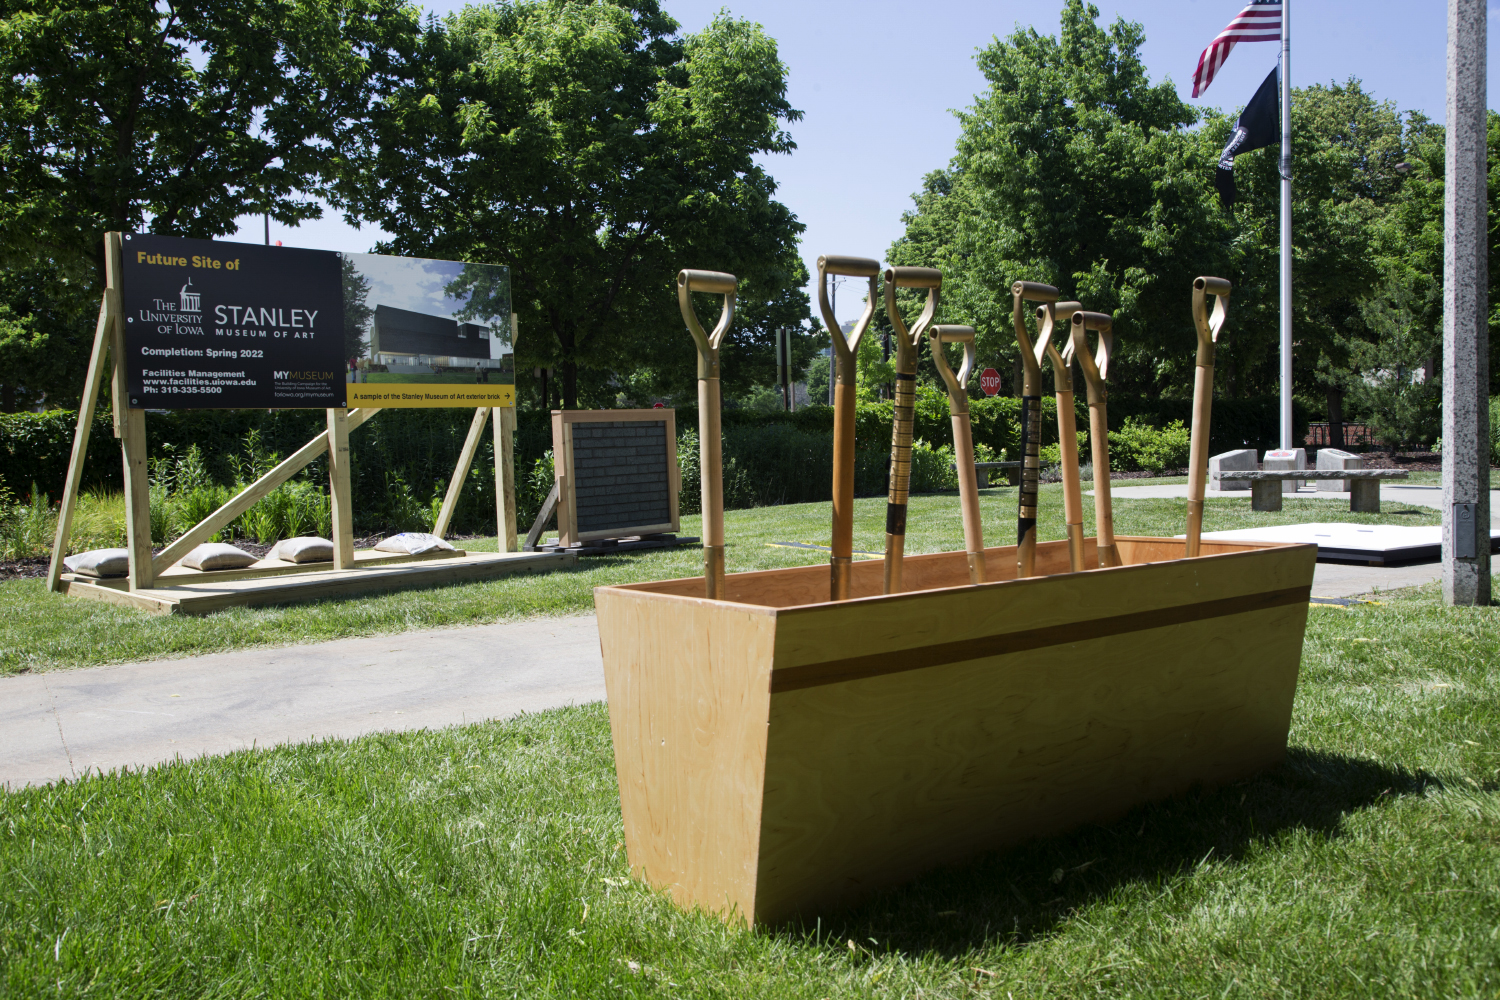 The shovels used for the at the Stanley Museum of Art ceremonial groundbreaking ceremony are seen on Friday, June 7, 2019. (Emily Wangen/The Daily Iowan)